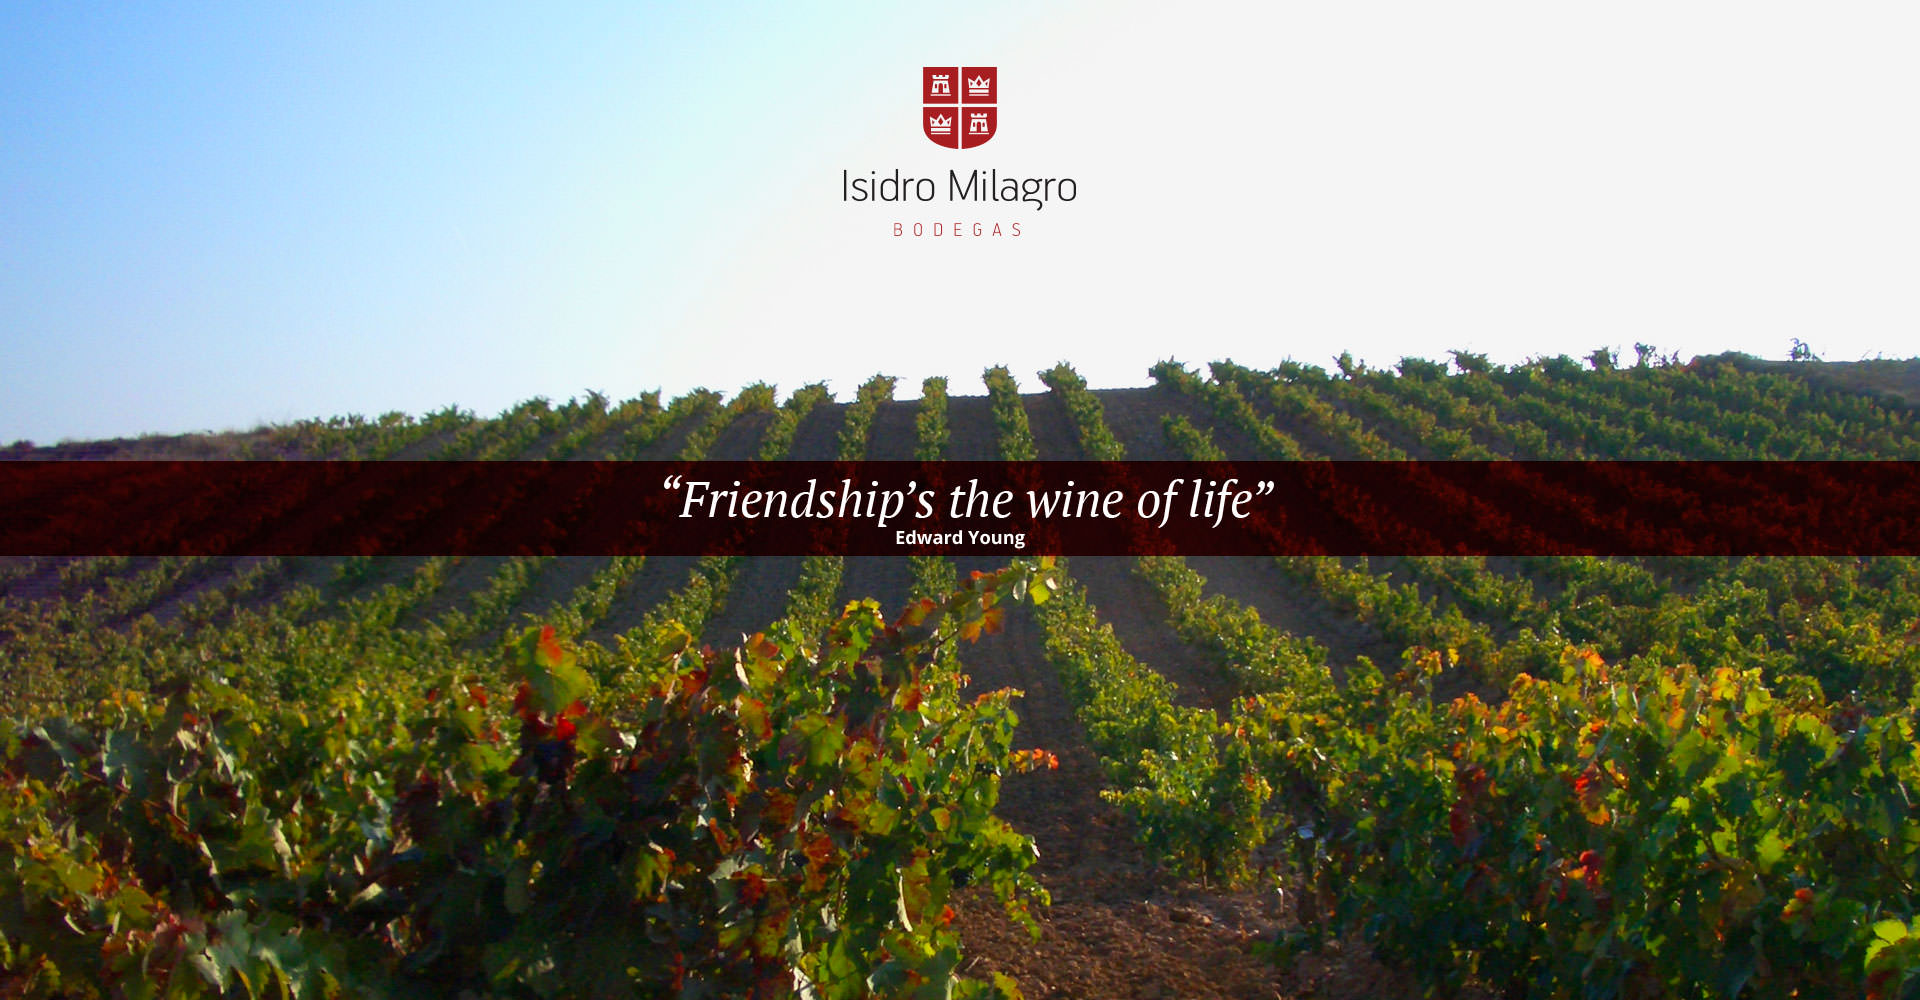 Frienship´s the wine of life. Bodegas Isidro Milagro.